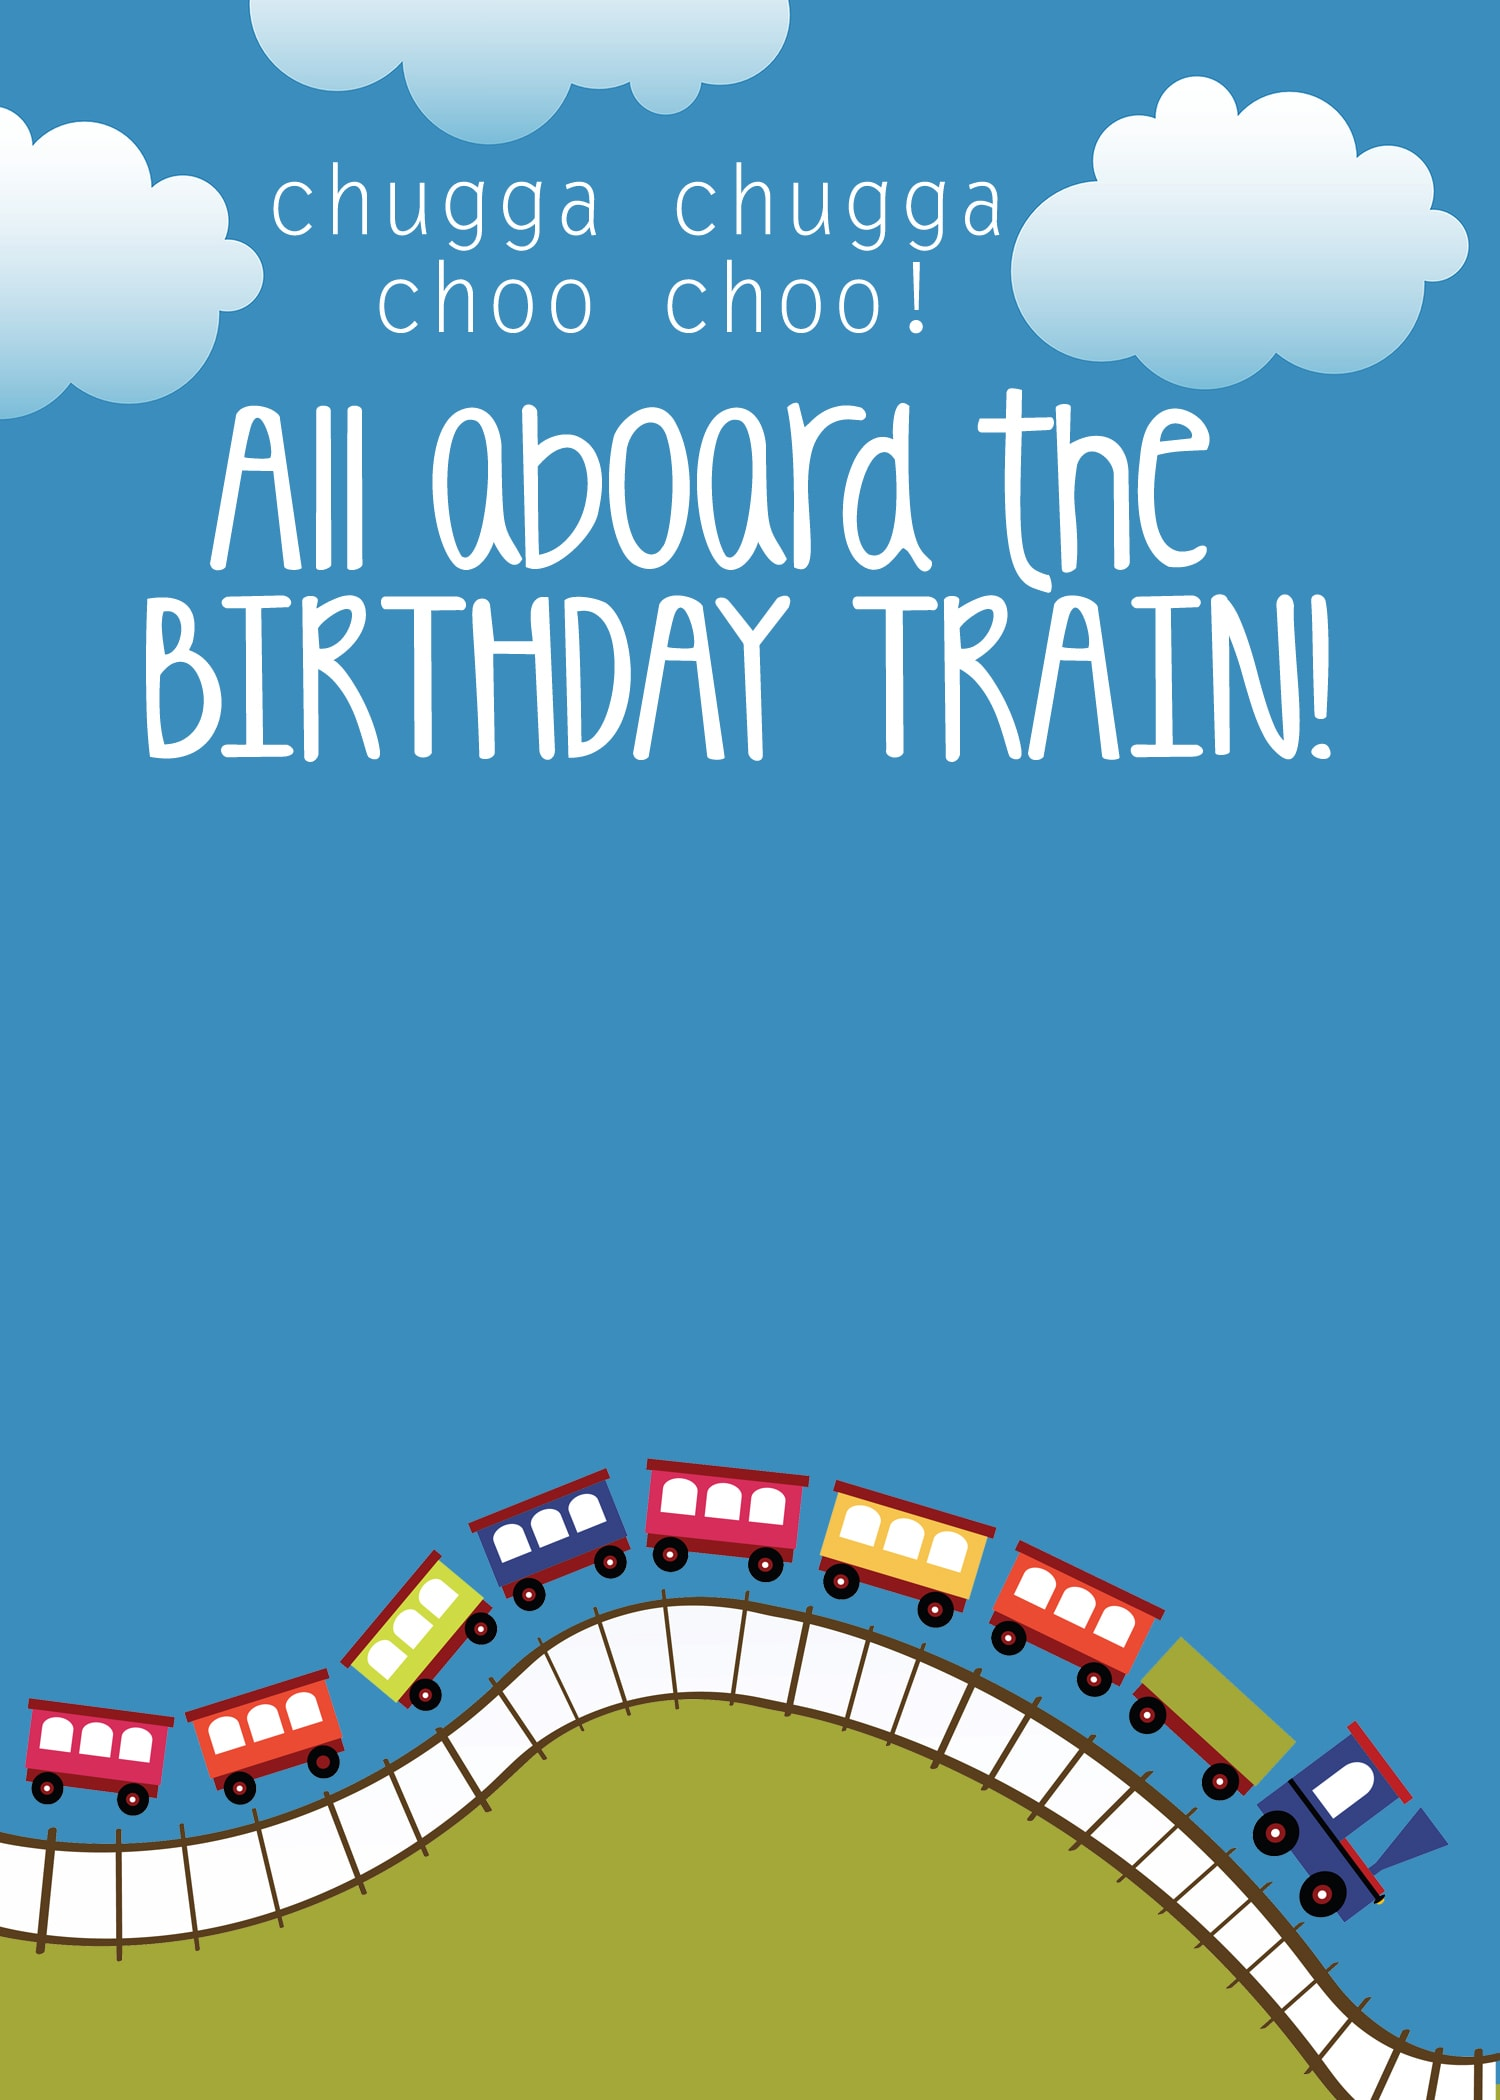 Https Howtonestforless Wp Content Uploads 2017 03 Train Birthday Party Invitation Template Jpg